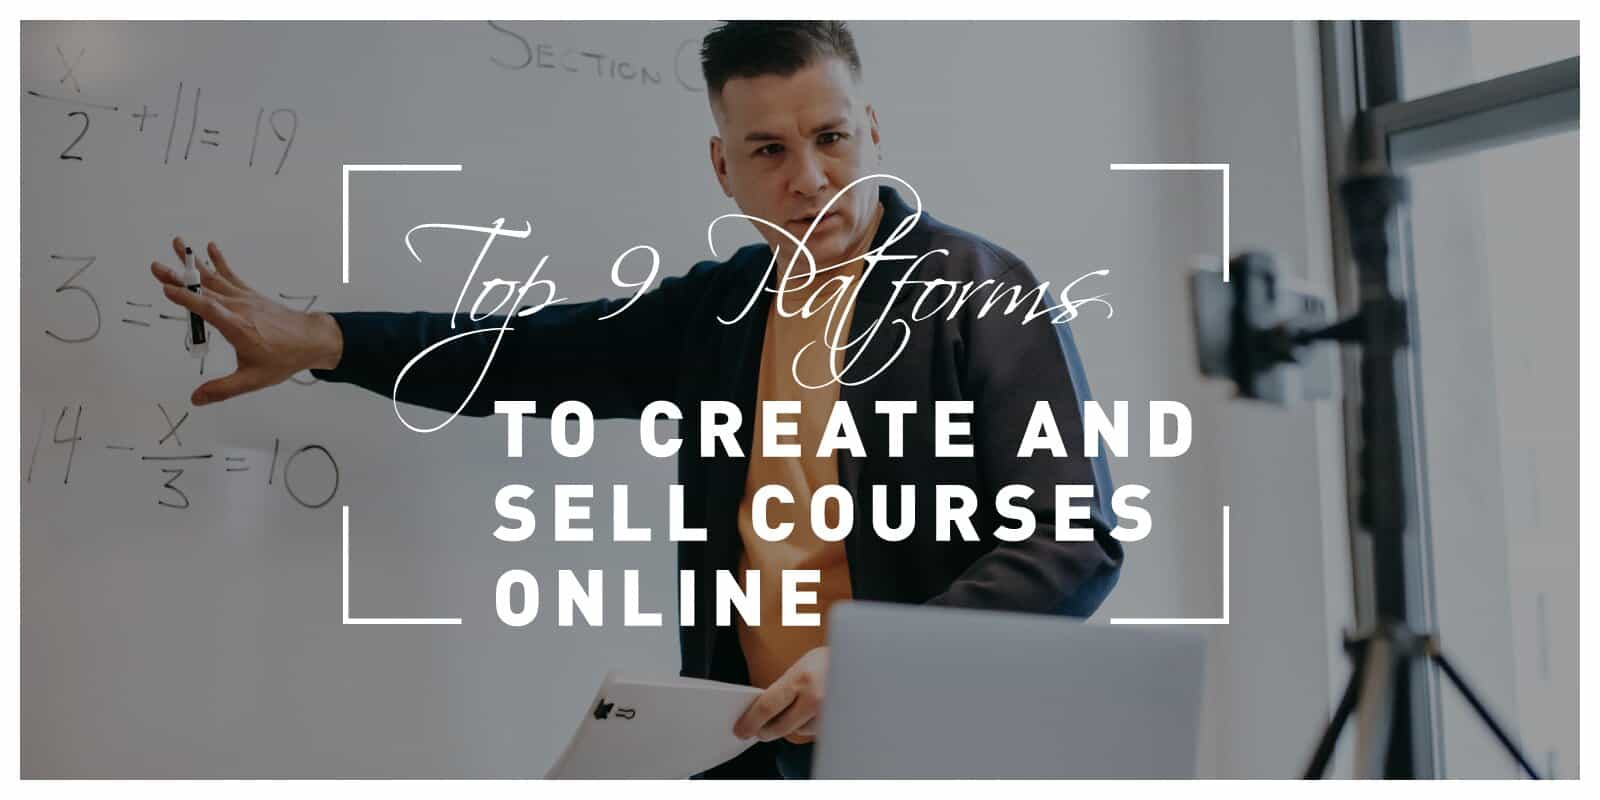 Top 9 Platforms to Create and Sell Courses Online